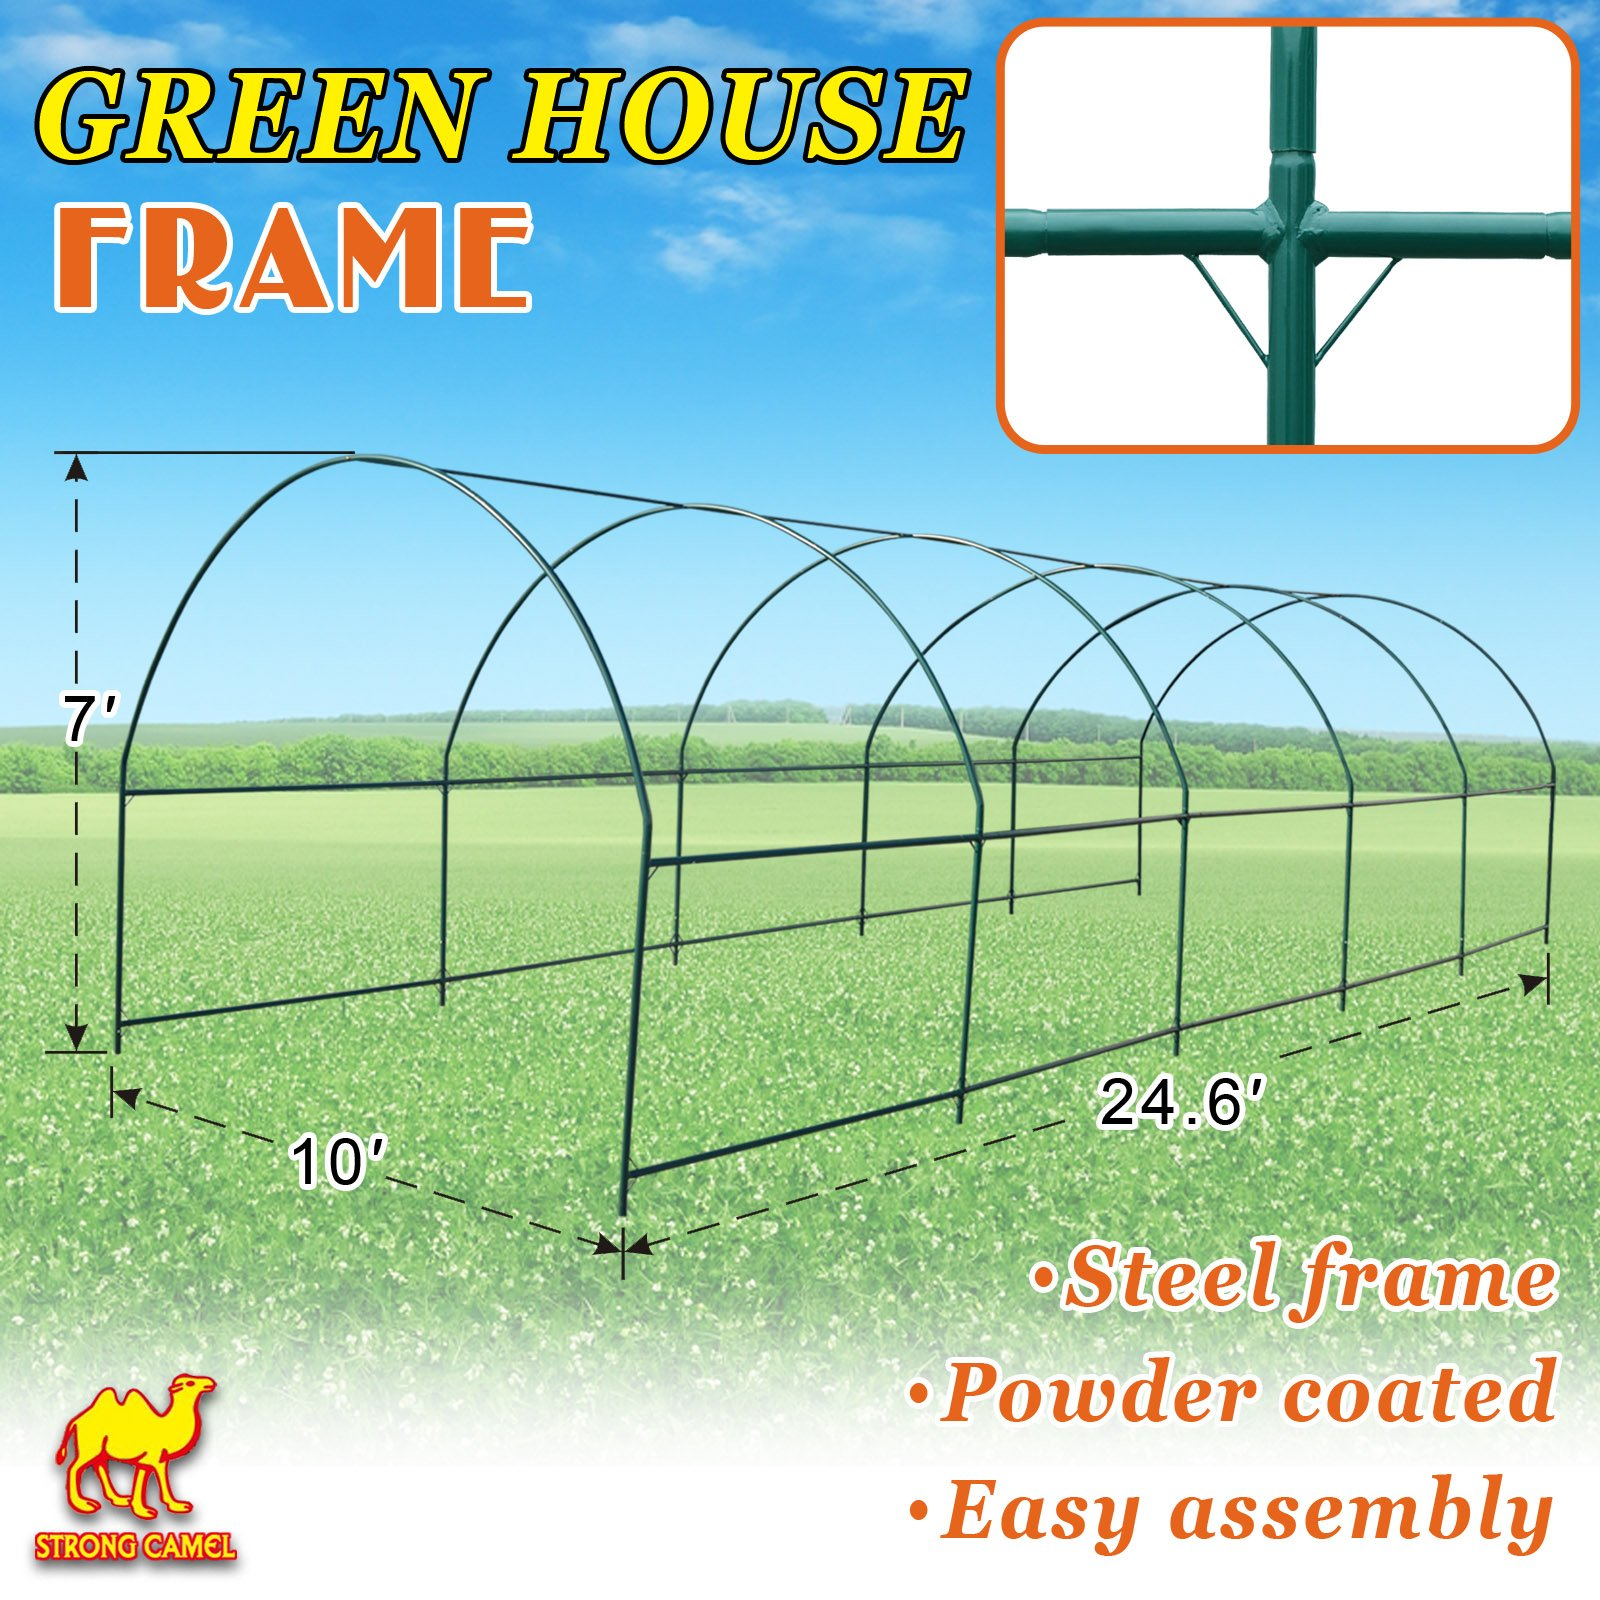 Strong Camel Multi-use Support Arch Frame for Climbing Plants/Flowers/Vegetables (24.6'X10' X 7') by Strong Camel